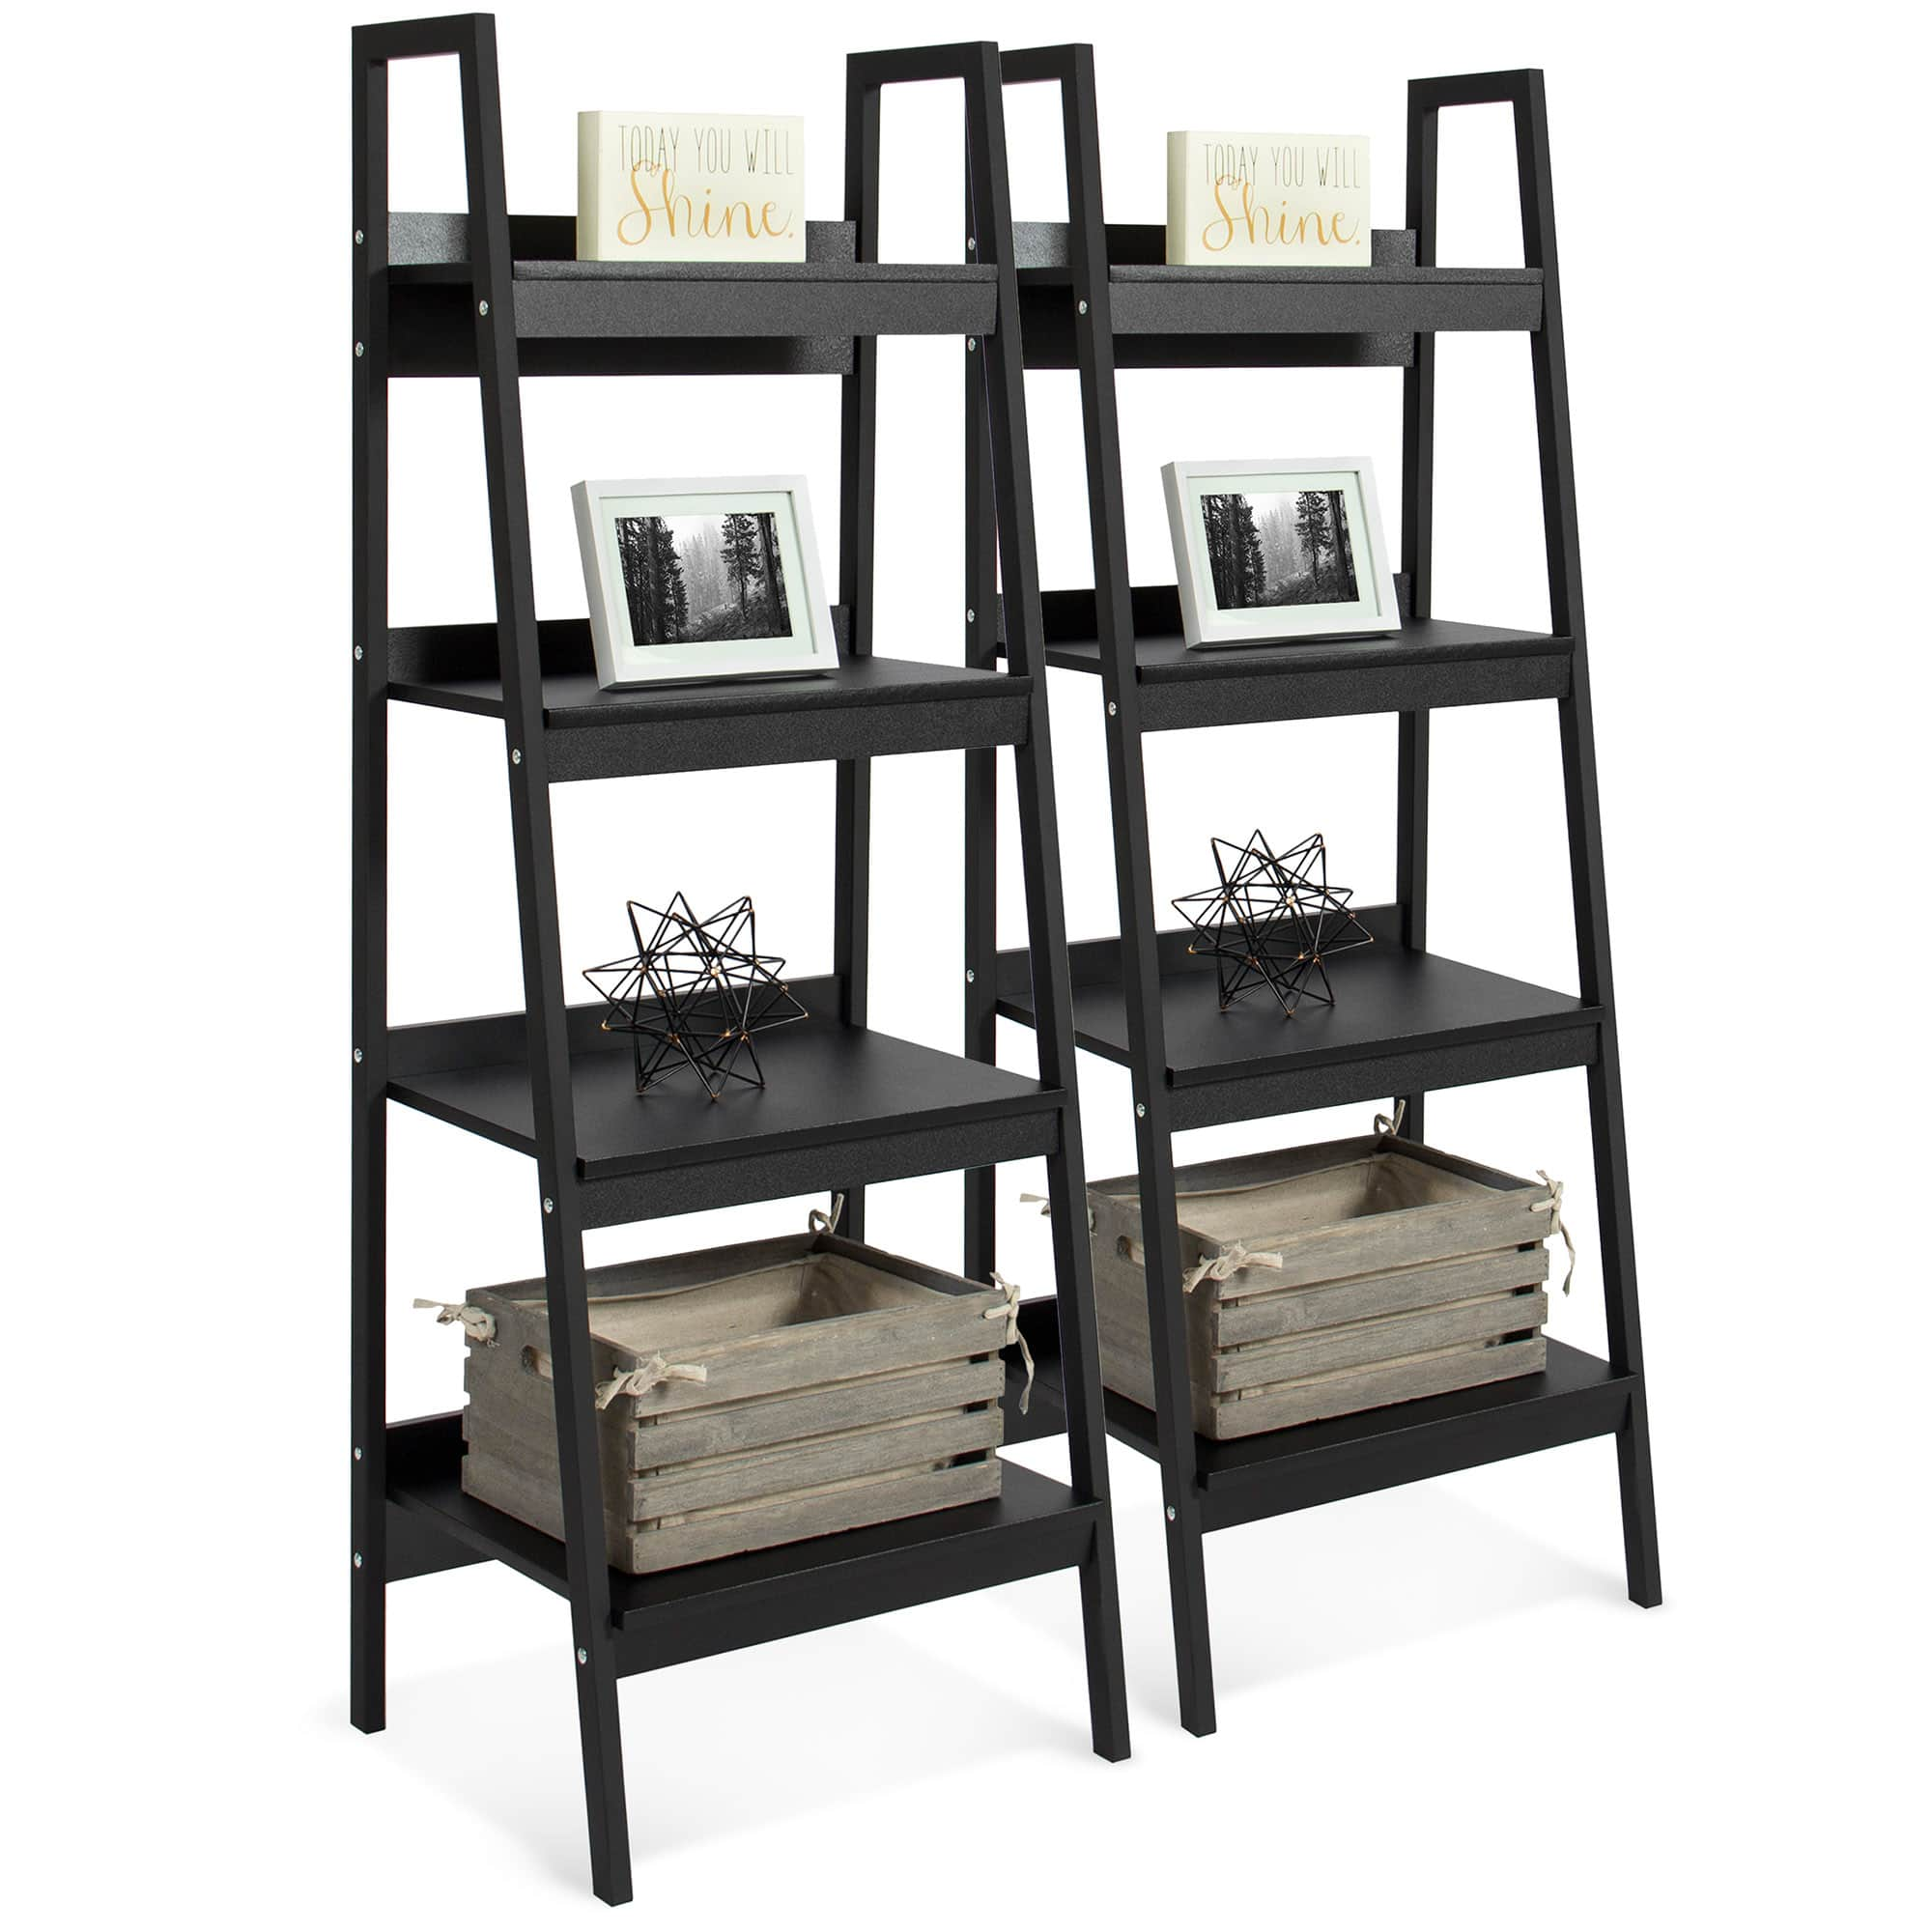 """Wooden Ladder Bookcase (62.75""""x23.50""""x4"""") 2 for $104 ($52 each) + Free Shipping"""